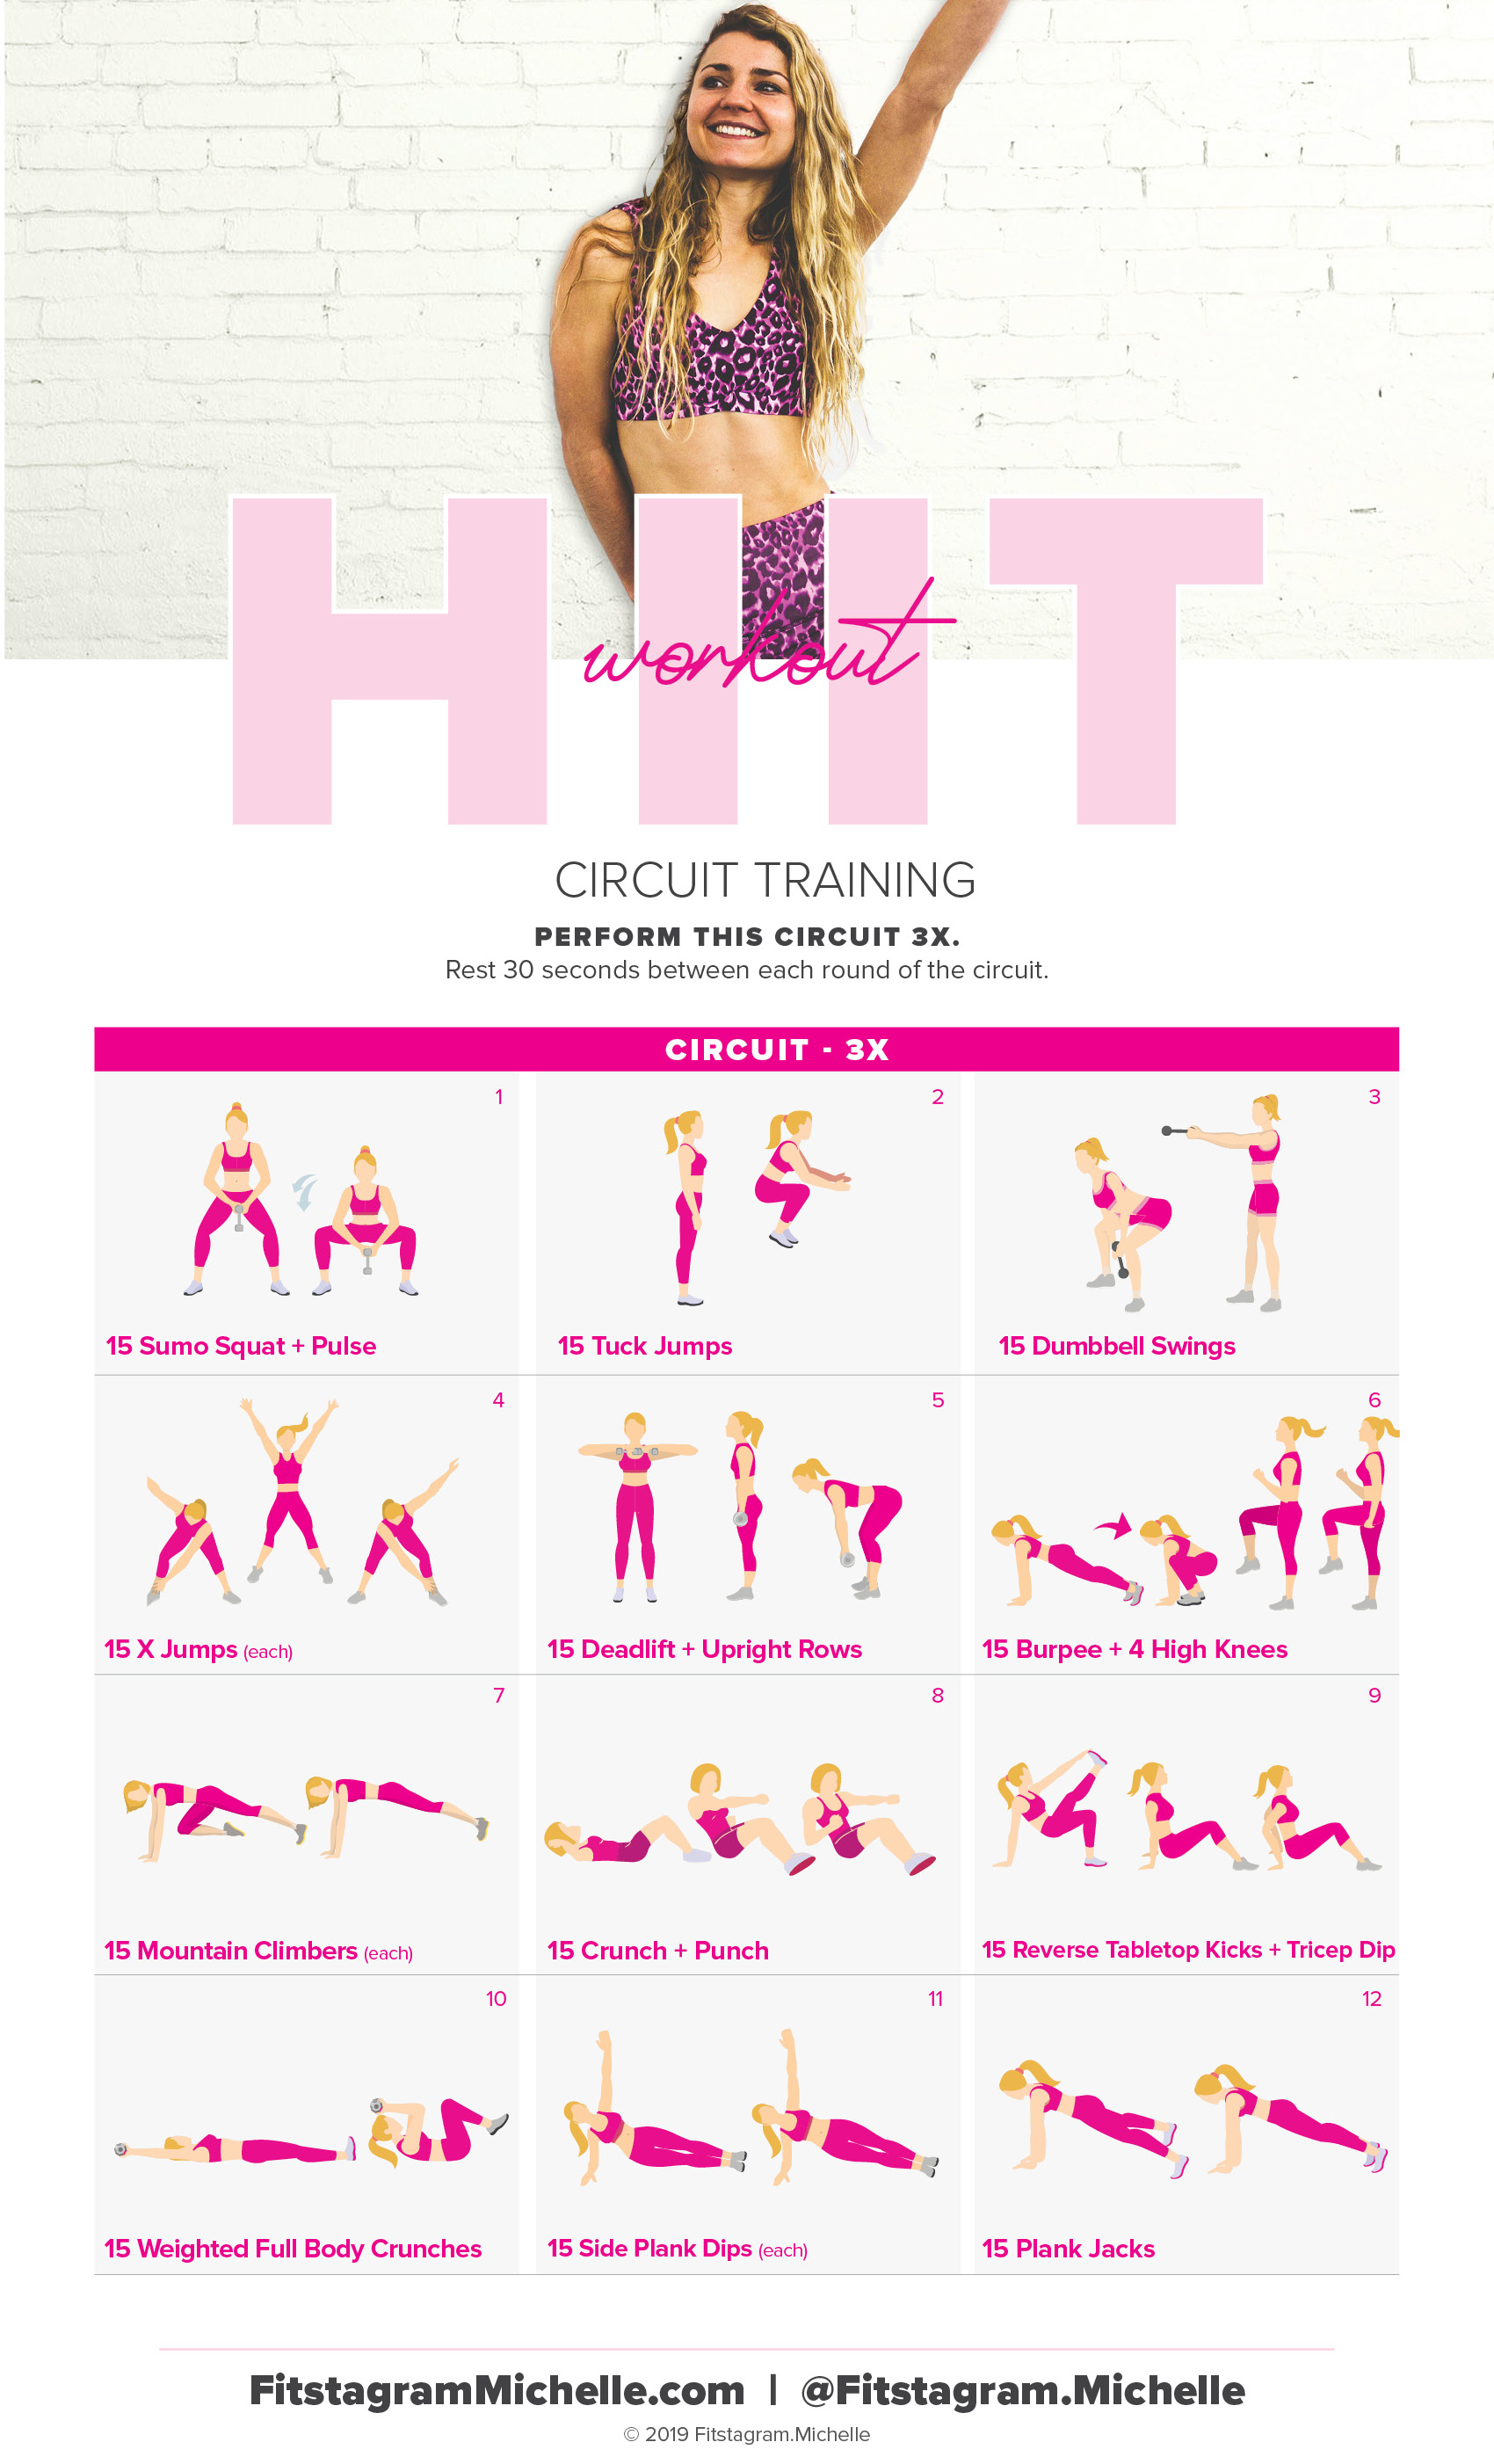 Try this HIIT workout for a total body workout. HIIT will burn body fat, tone you from head to toe, and get that bikini body. #womensfitness #weightloss #abworkout #HIITworkout #hiitcardio